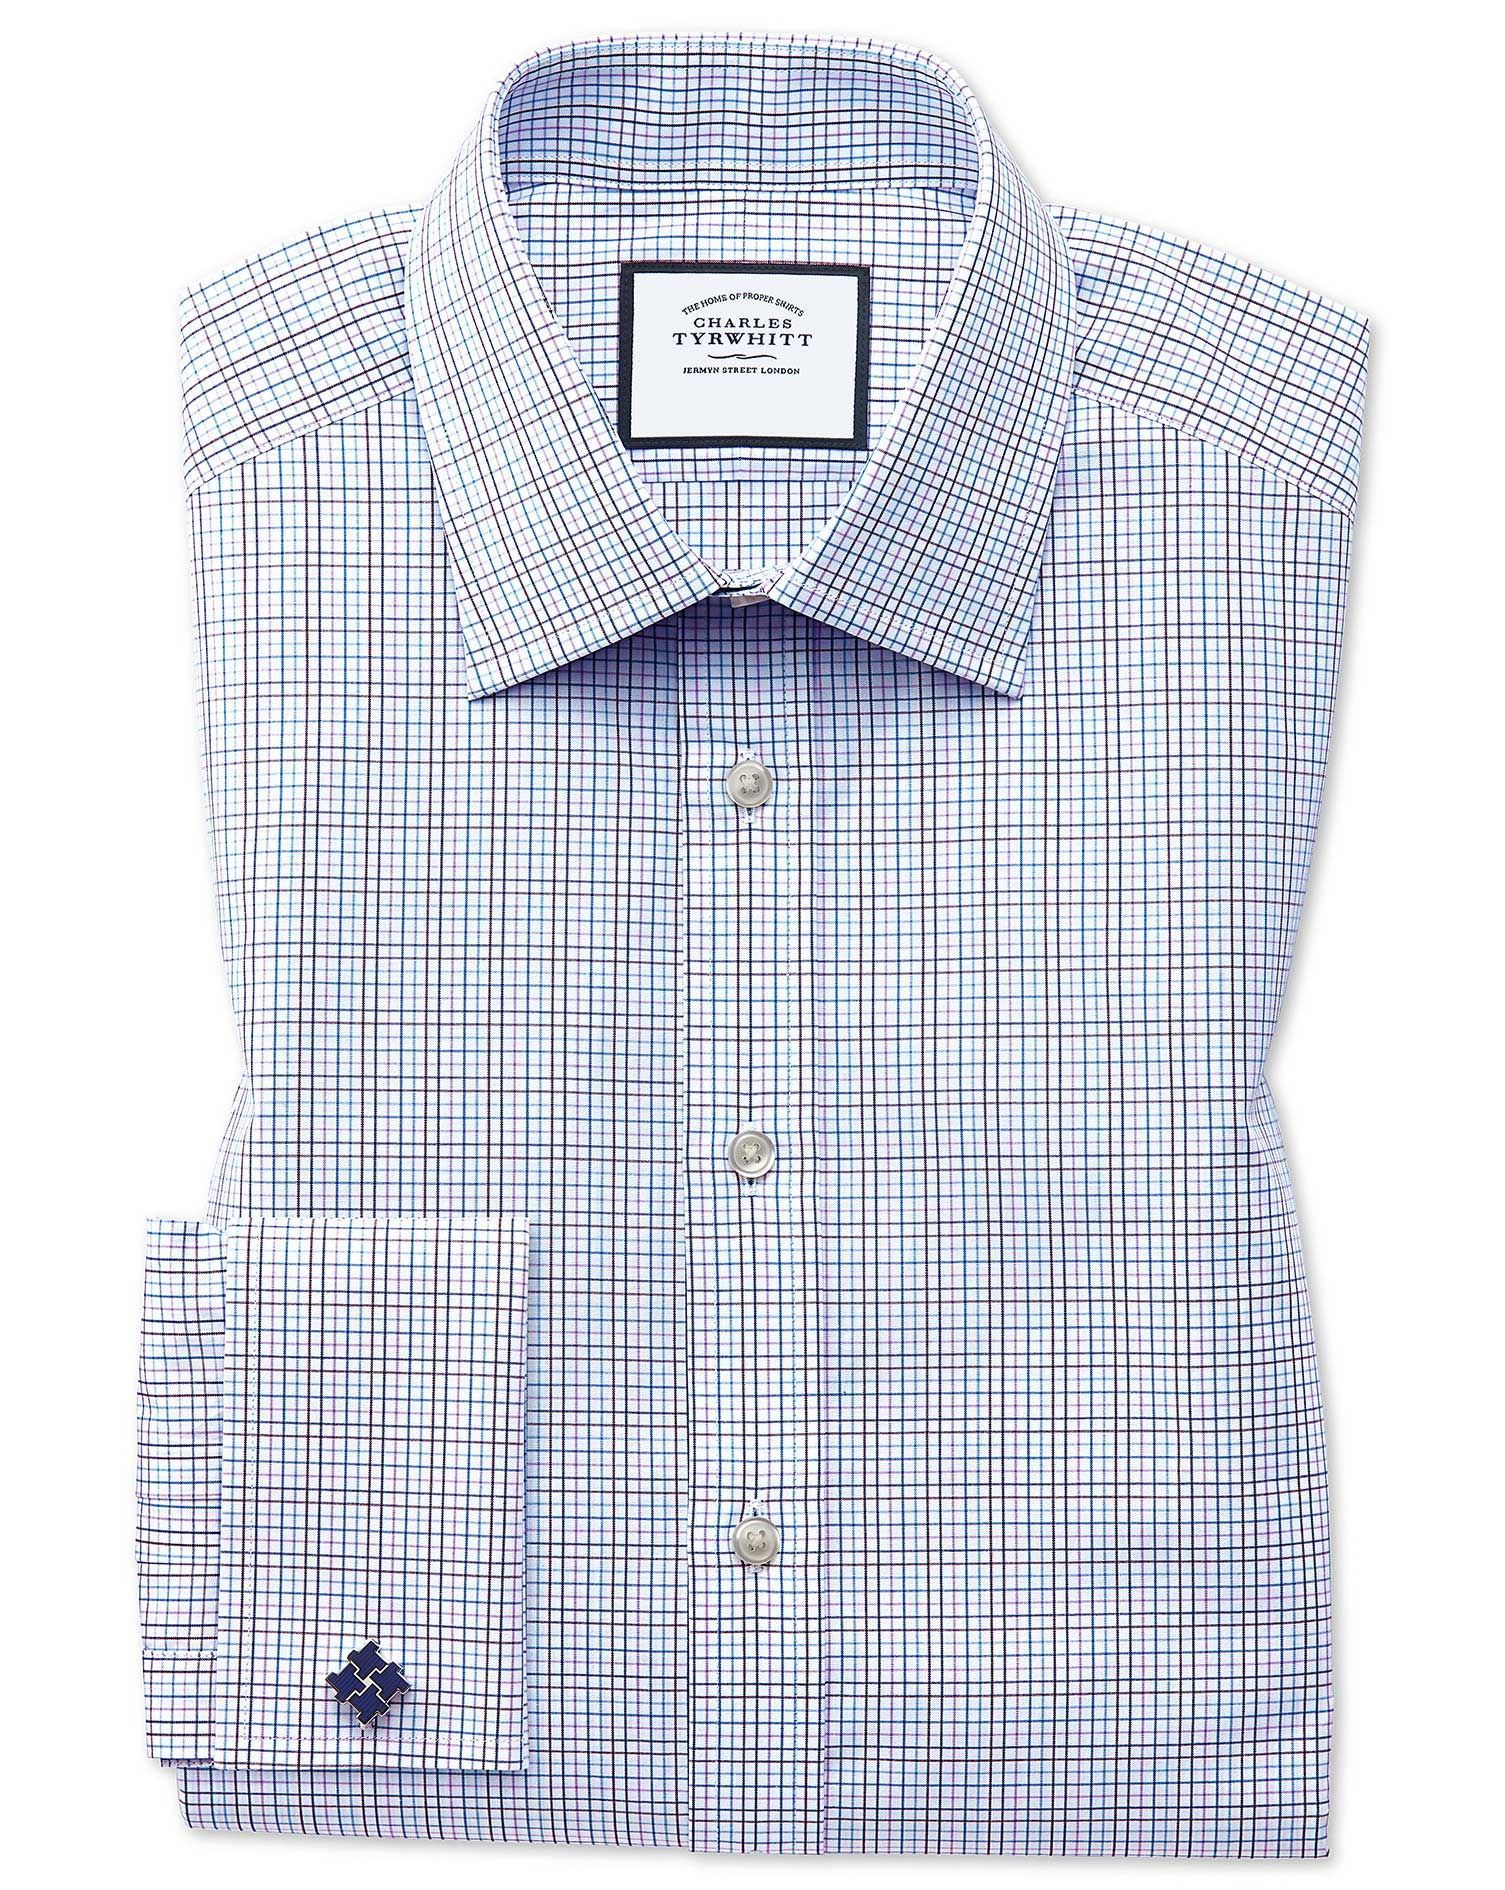 Classic Fit Purple Multi Check Egyptian Cotton Formal Shirt Double Cuff Size 18/35 by Charles Tyrwhi